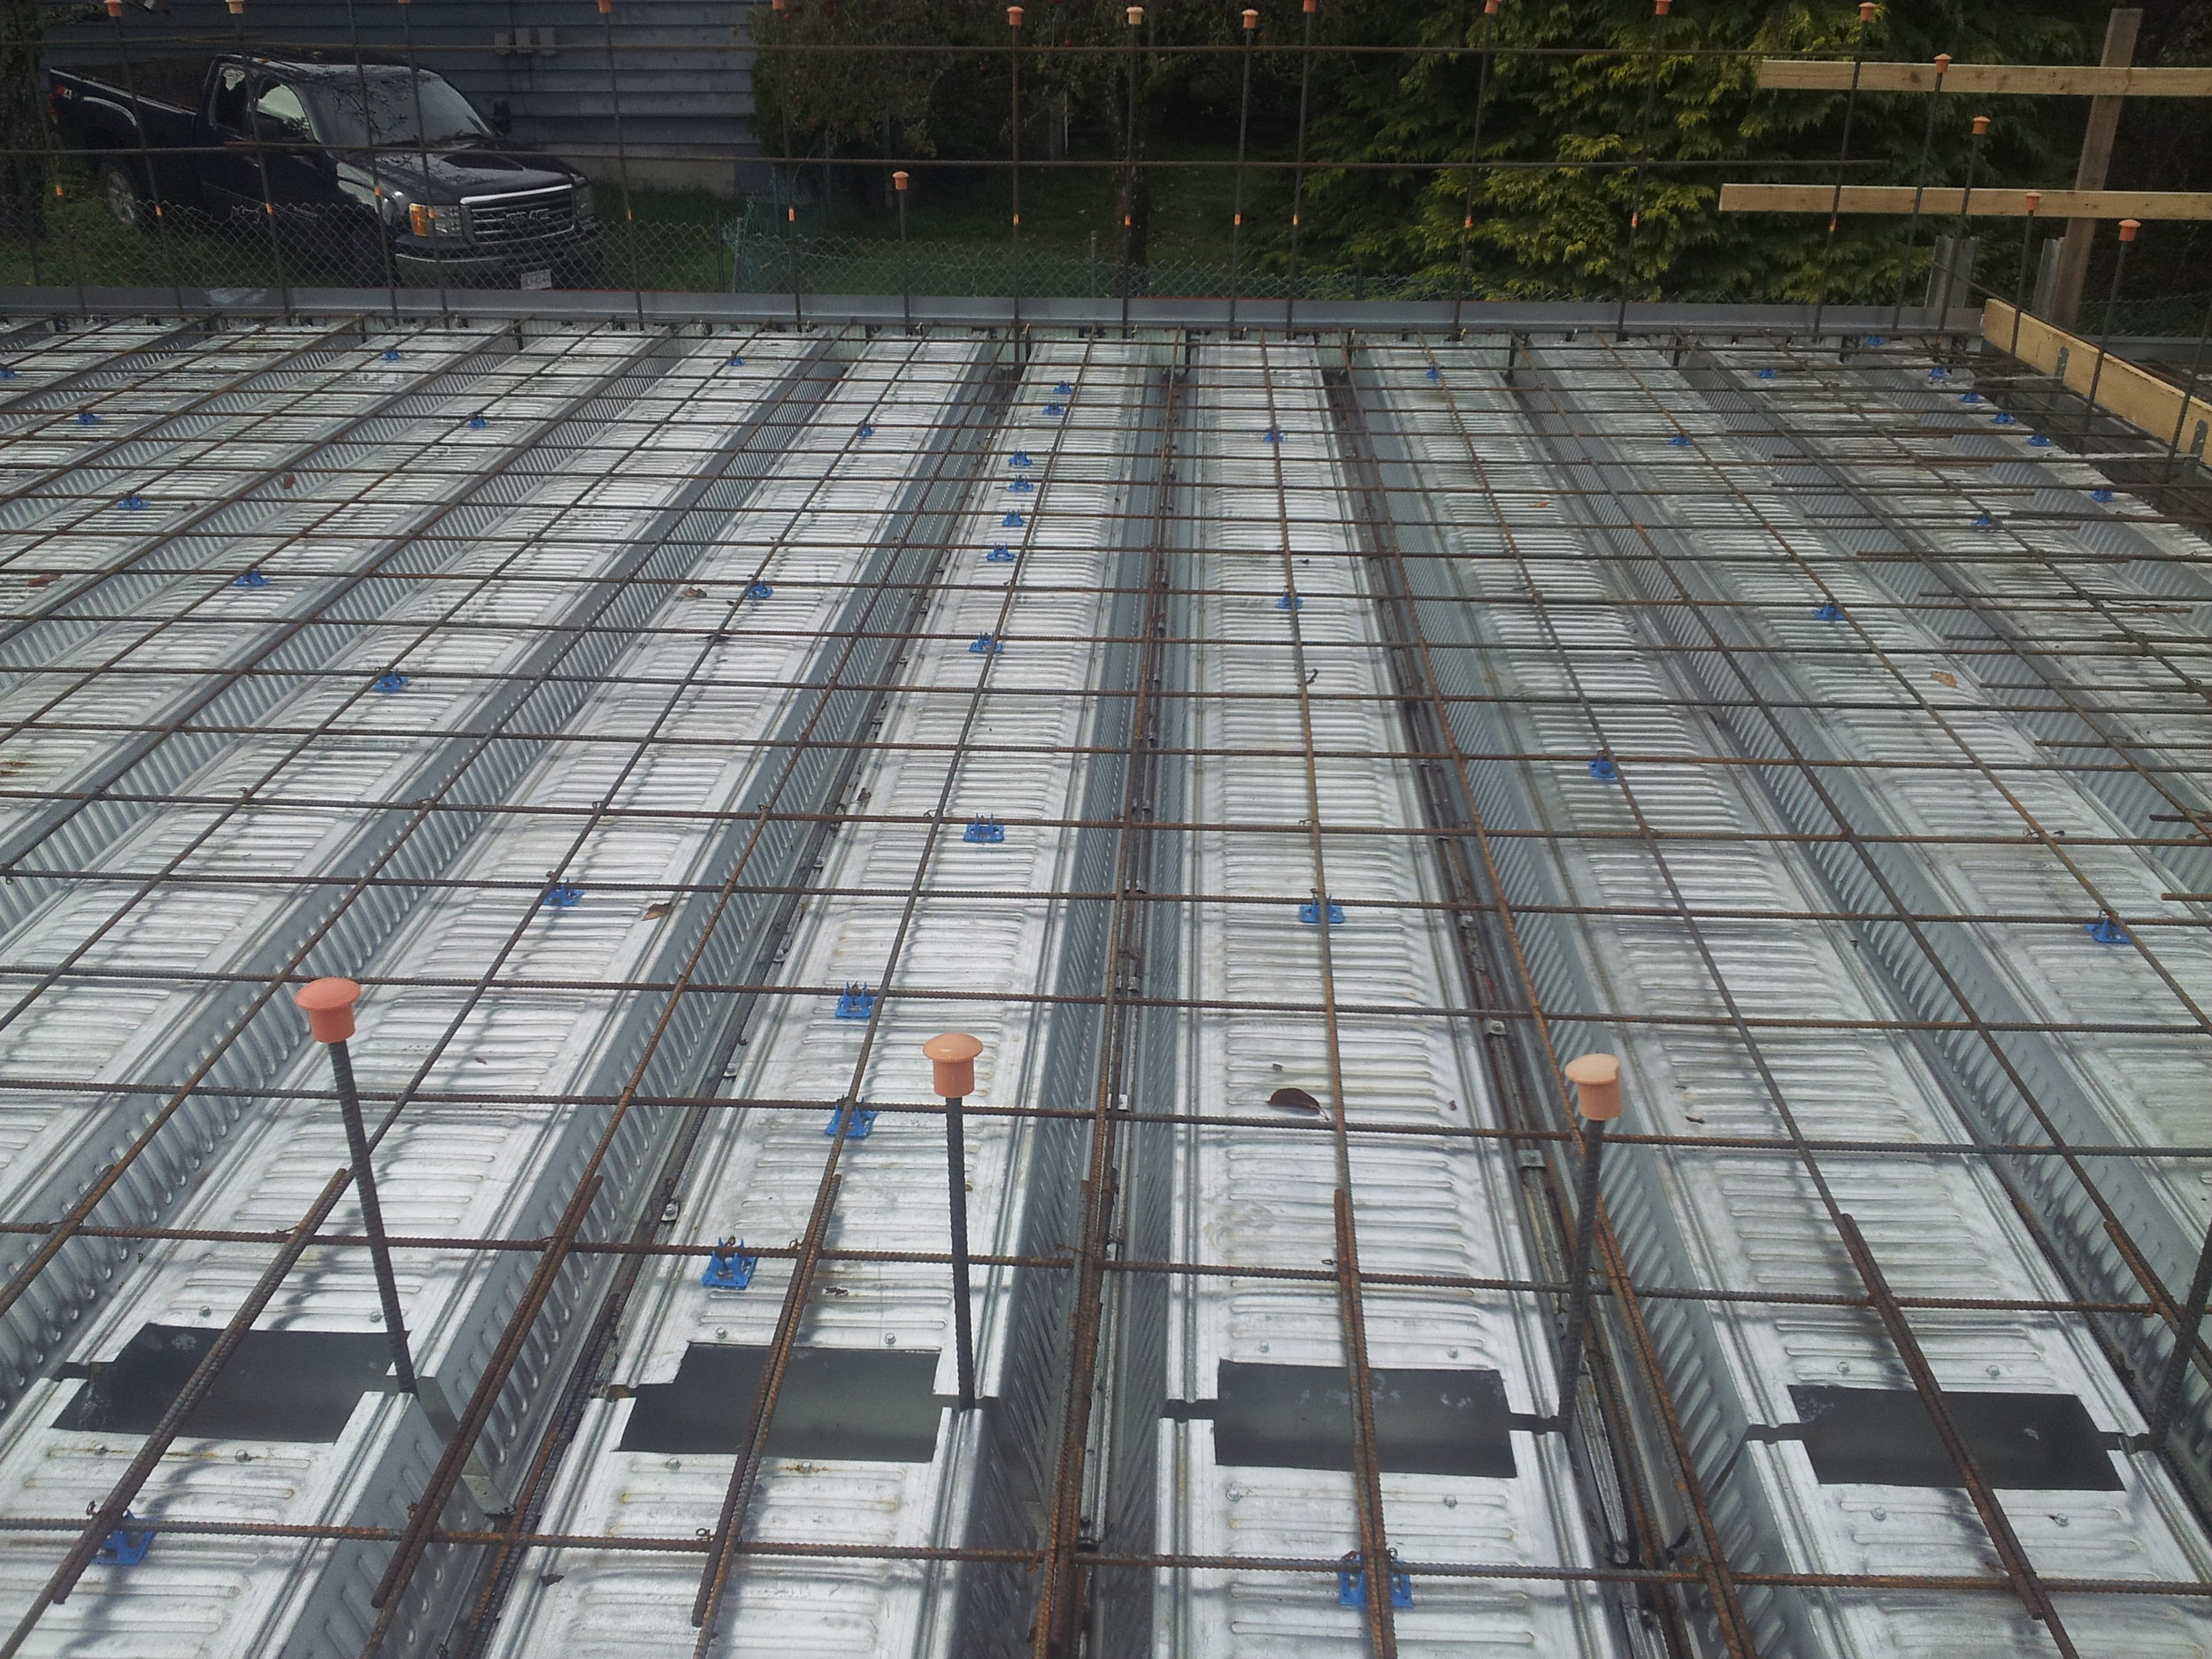 The Comslab floor system is then attached and poured to a 4 inch thickness in the field and 11 inches in the V beams